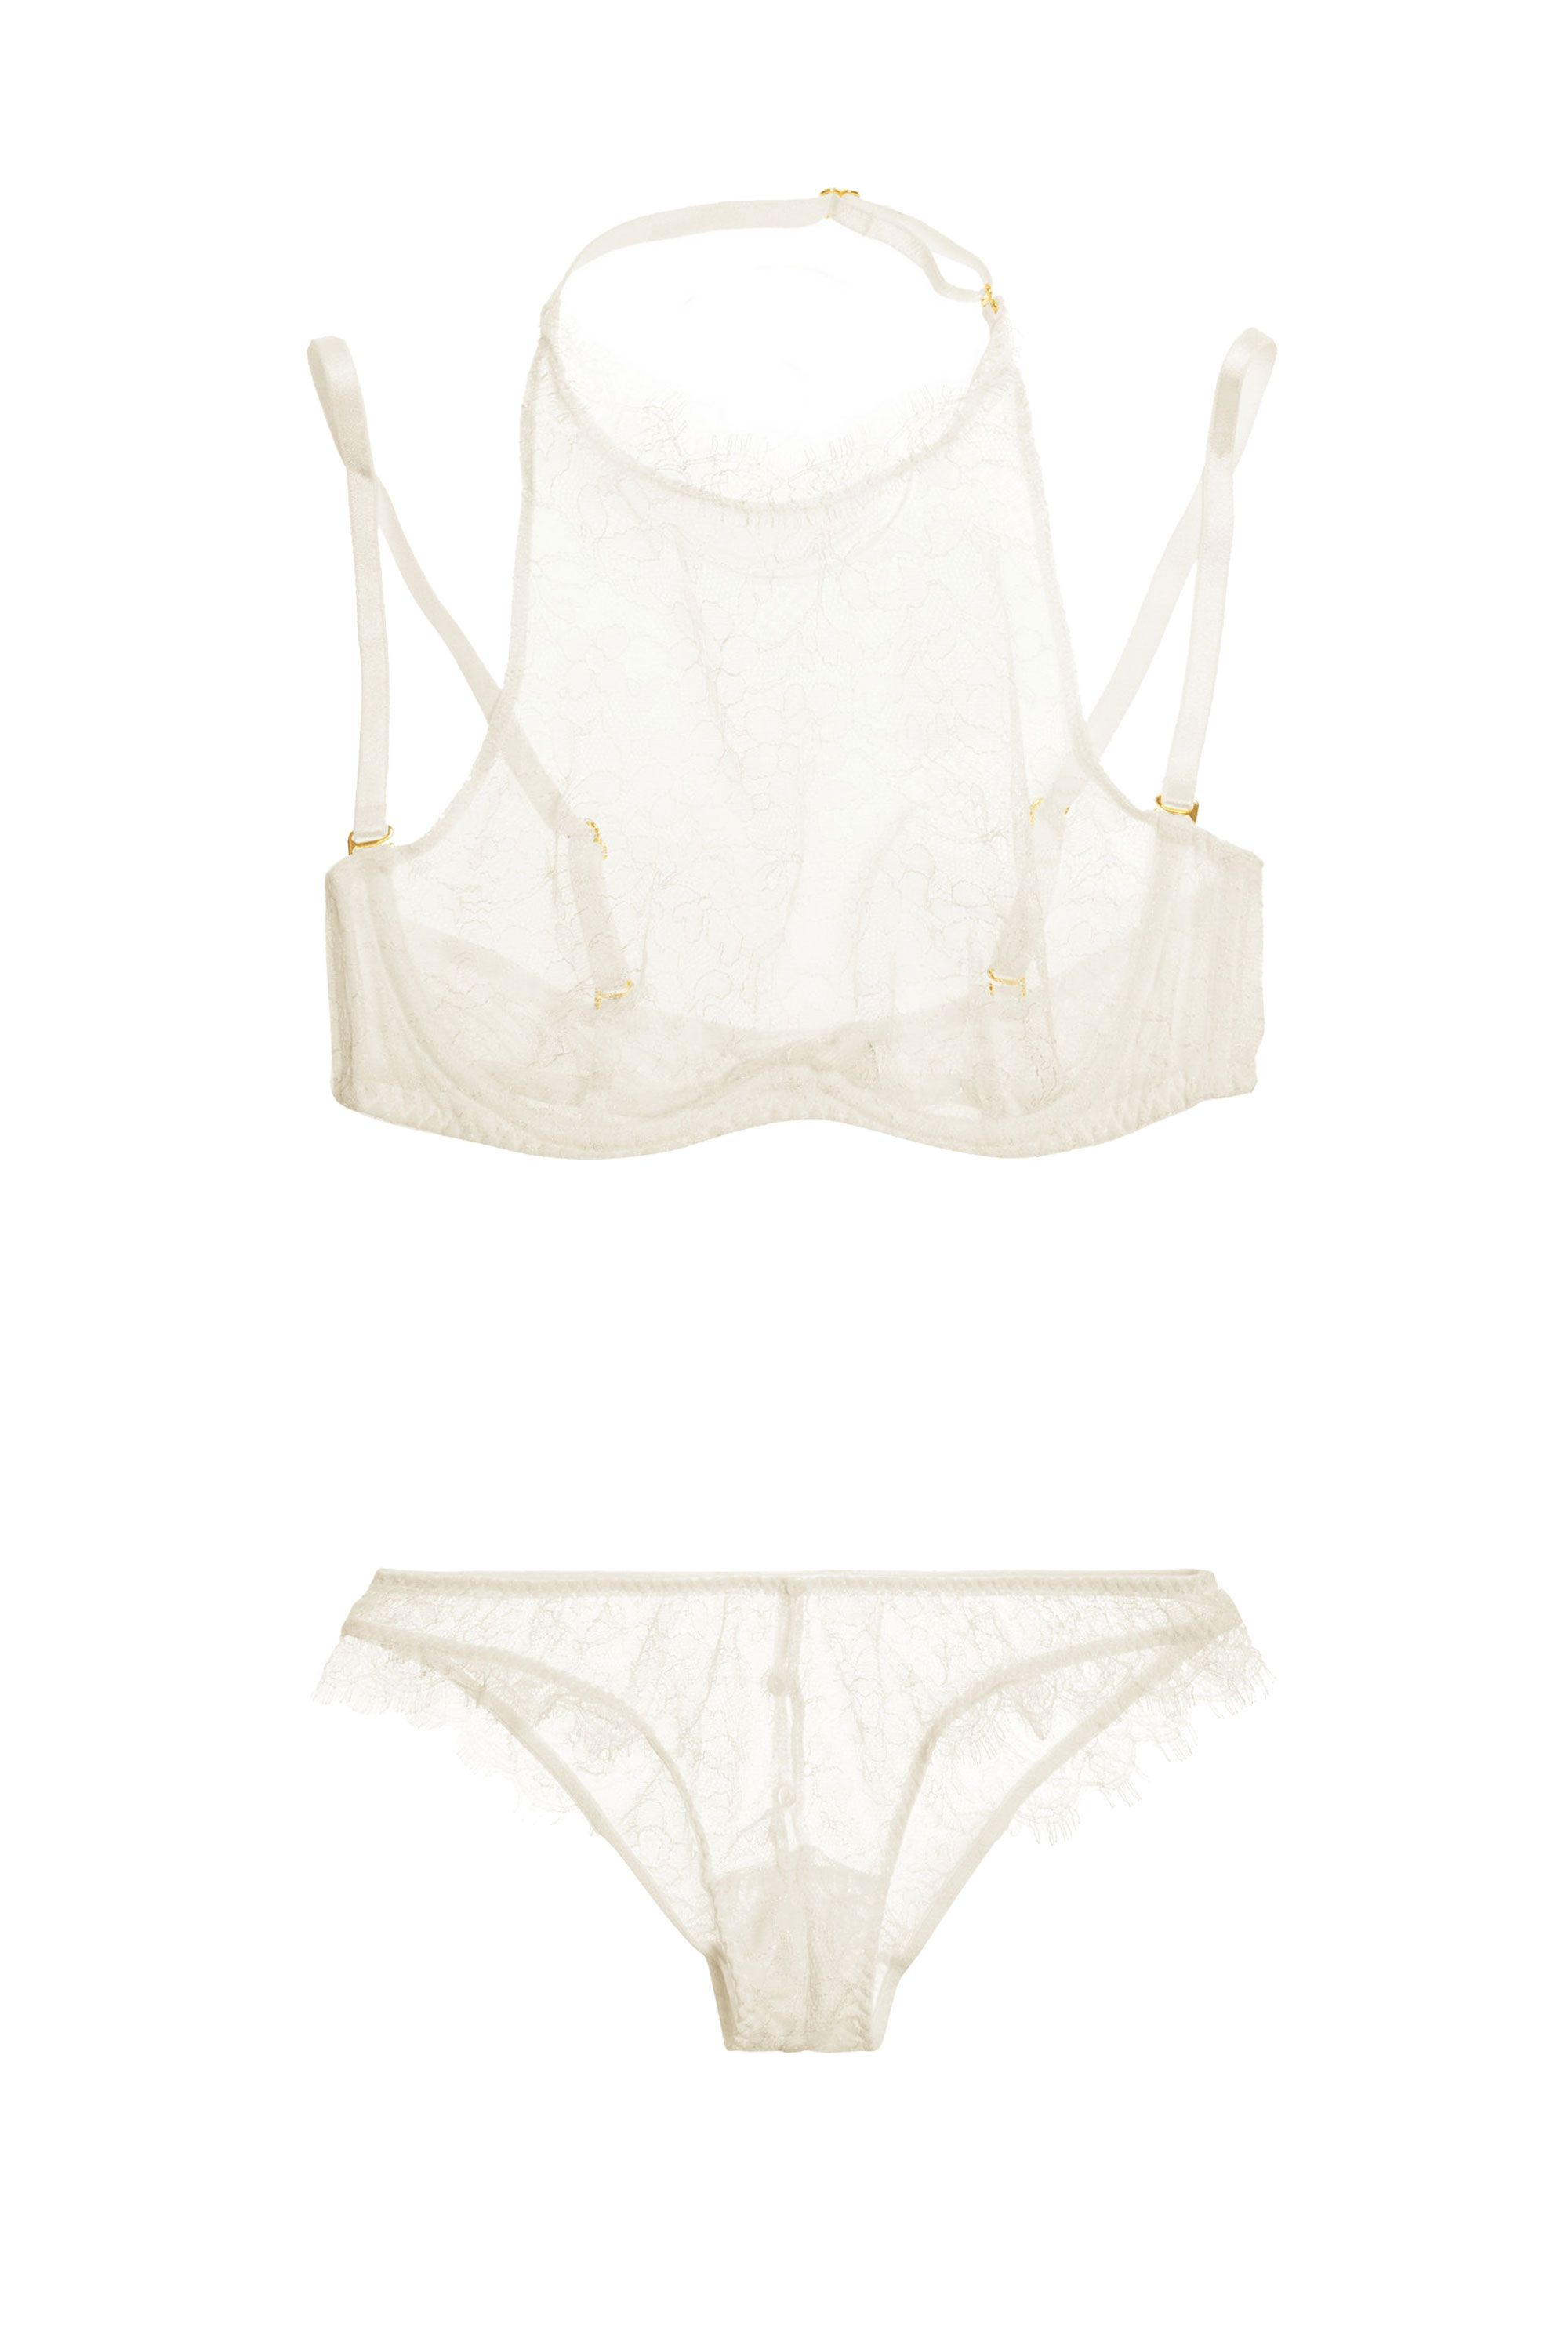 """<p>Agent Provocateur Annoushka Lace Underwired Bra, $320; <a target=""""_blank"""" href=""""http://www.net-a-porter.com/us/en/product/487813"""">net-a-porter.com</a></p><p>Agent Provocateur Annoushka Lace Briefs, $300; <a target=""""_blank"""" href=""""http://www.net-a-porter.com/us/en/product/487814"""">net-a-porter.com</a></p>"""